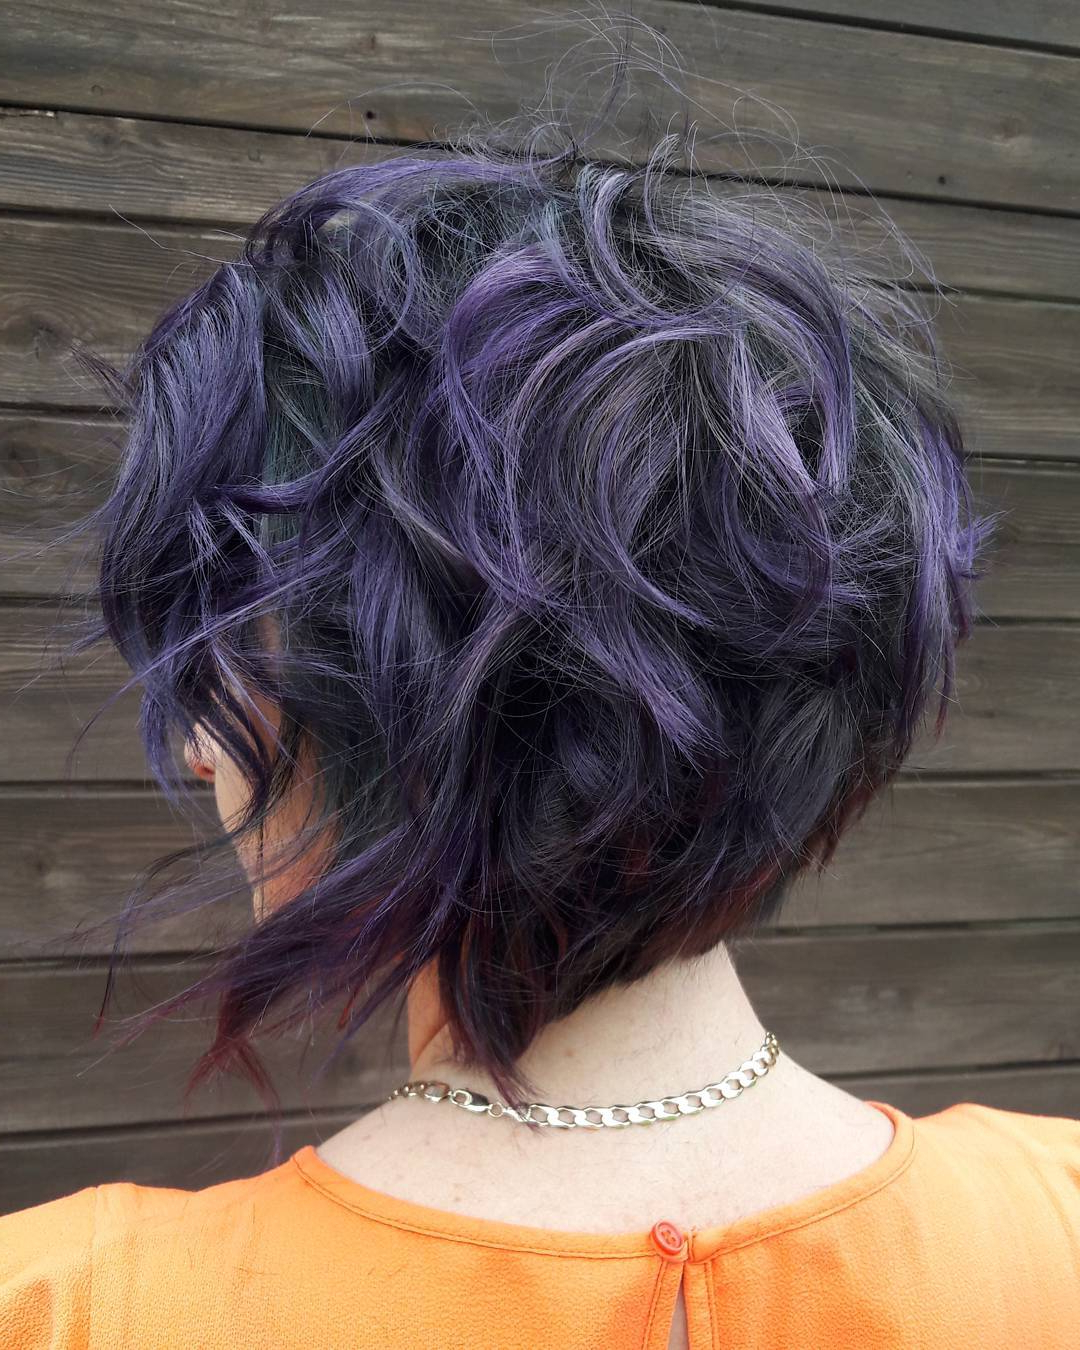 10 Amazing Short Hairstyles For Free Spirited Women! Short Within Sunset Inspired Pixie Bob Hairstyles With Nape Undercut (View 3 of 20)